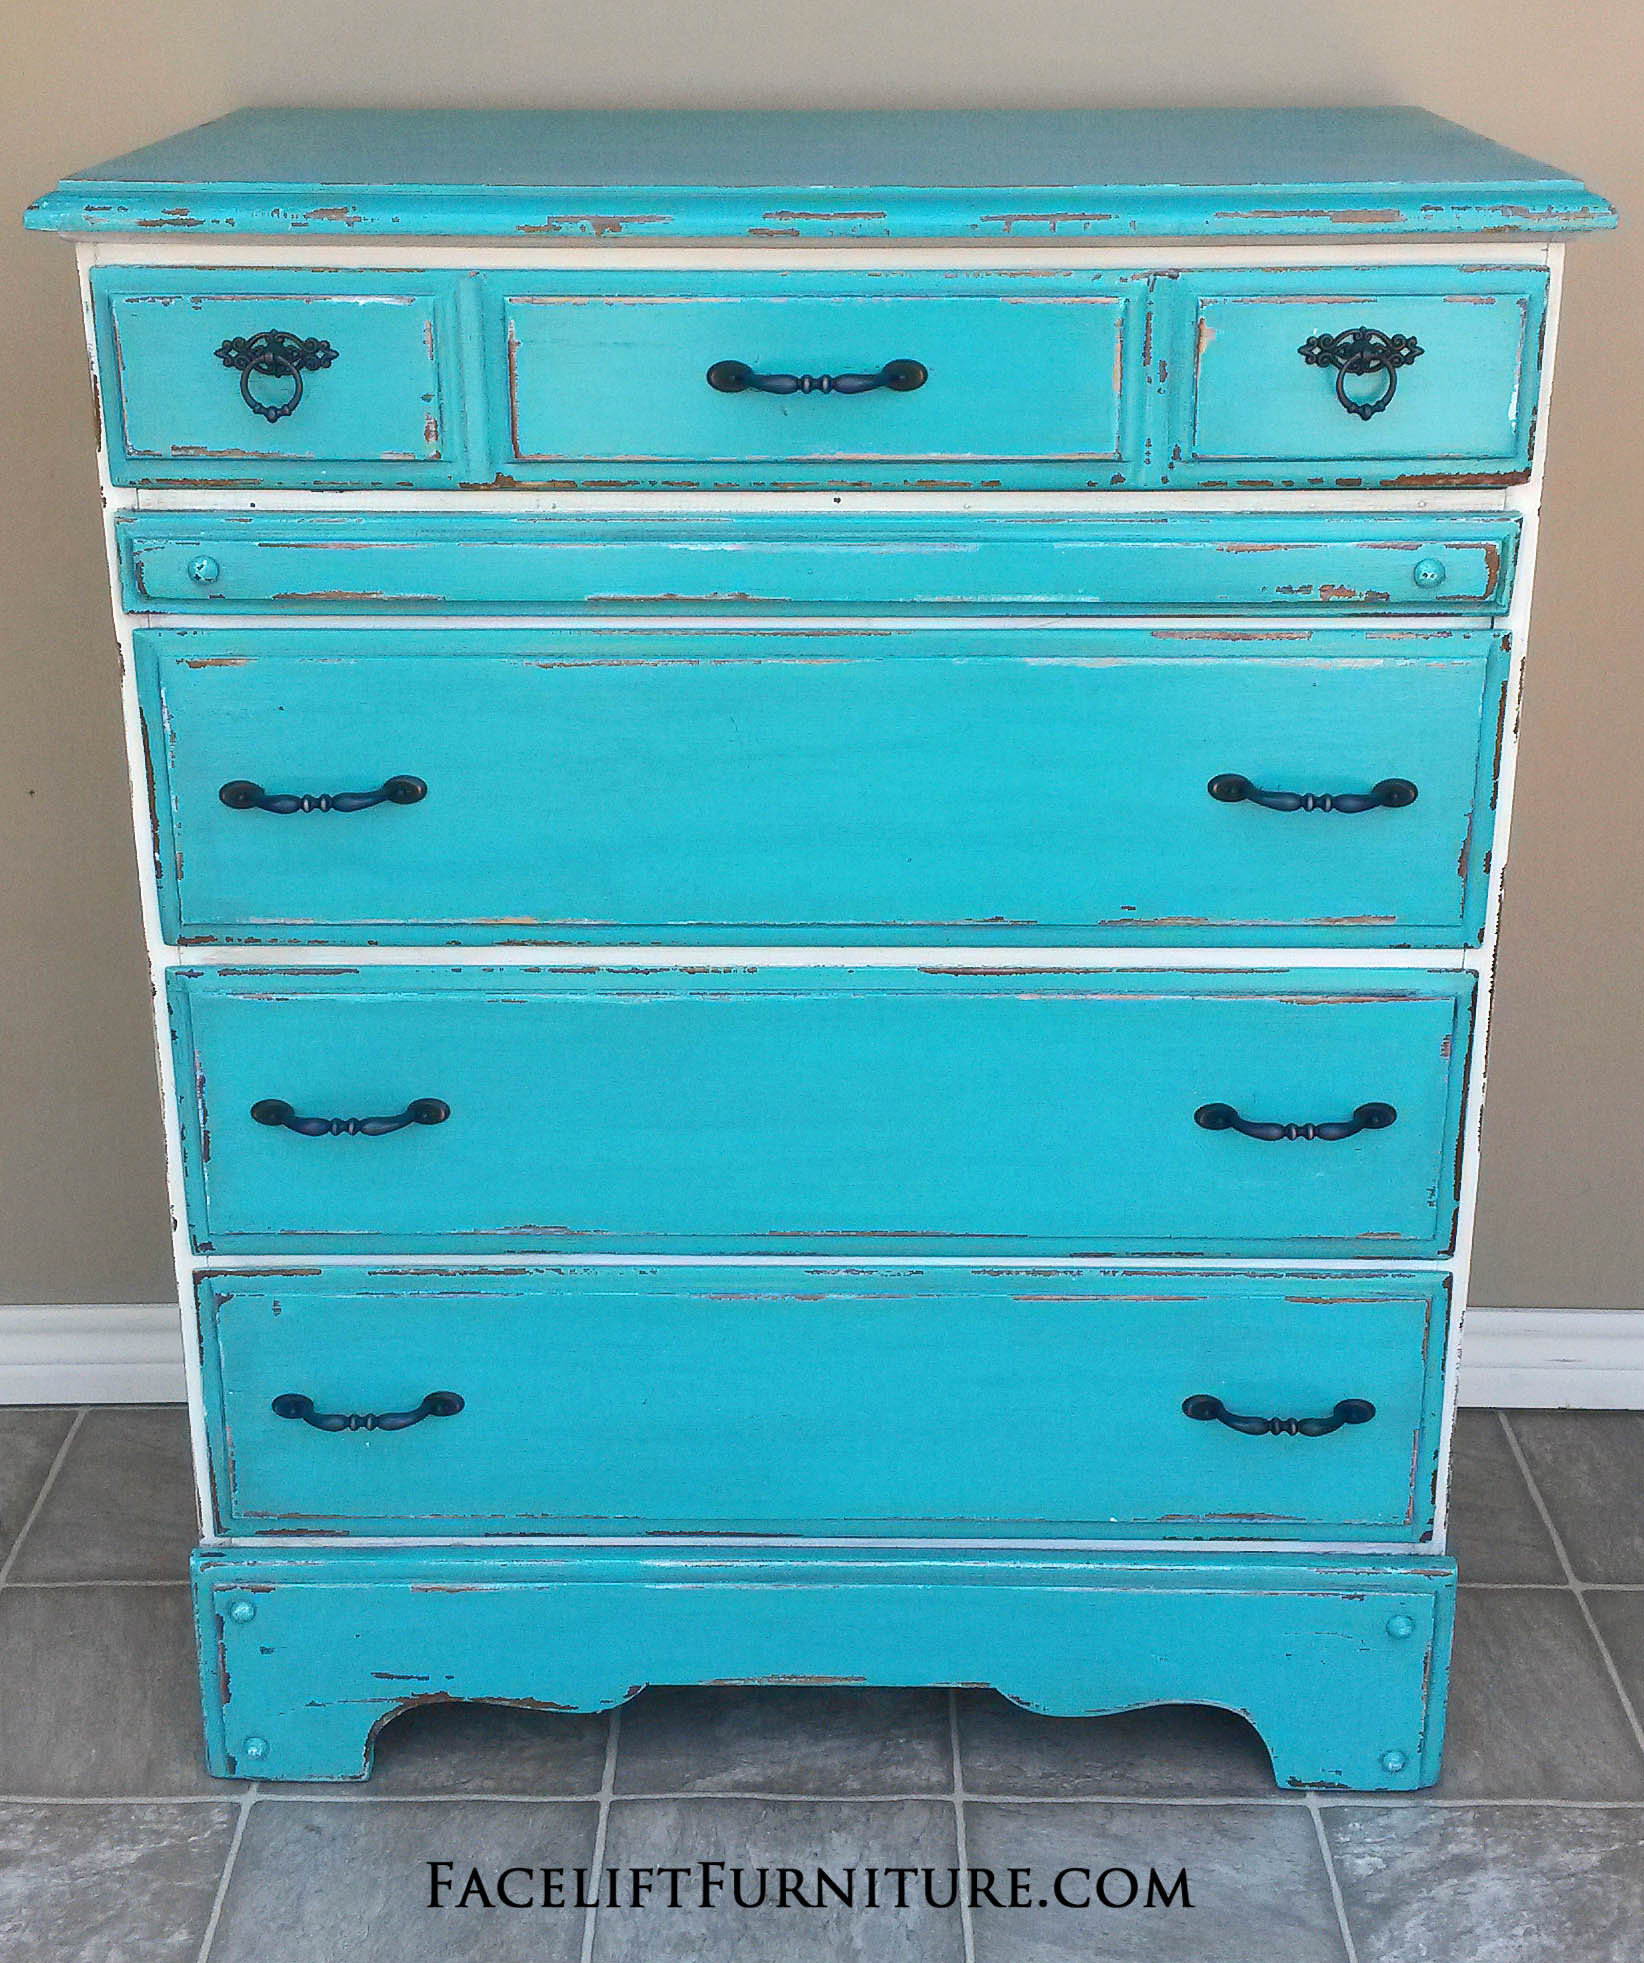 Turquoise and Antiqued White Chest of Drawers with Espresso Glaze. Heavy chippy distressing. New oil rubbed bronze pulls. From Facelift Furniture's Turquoise Refinished Furniture collection.